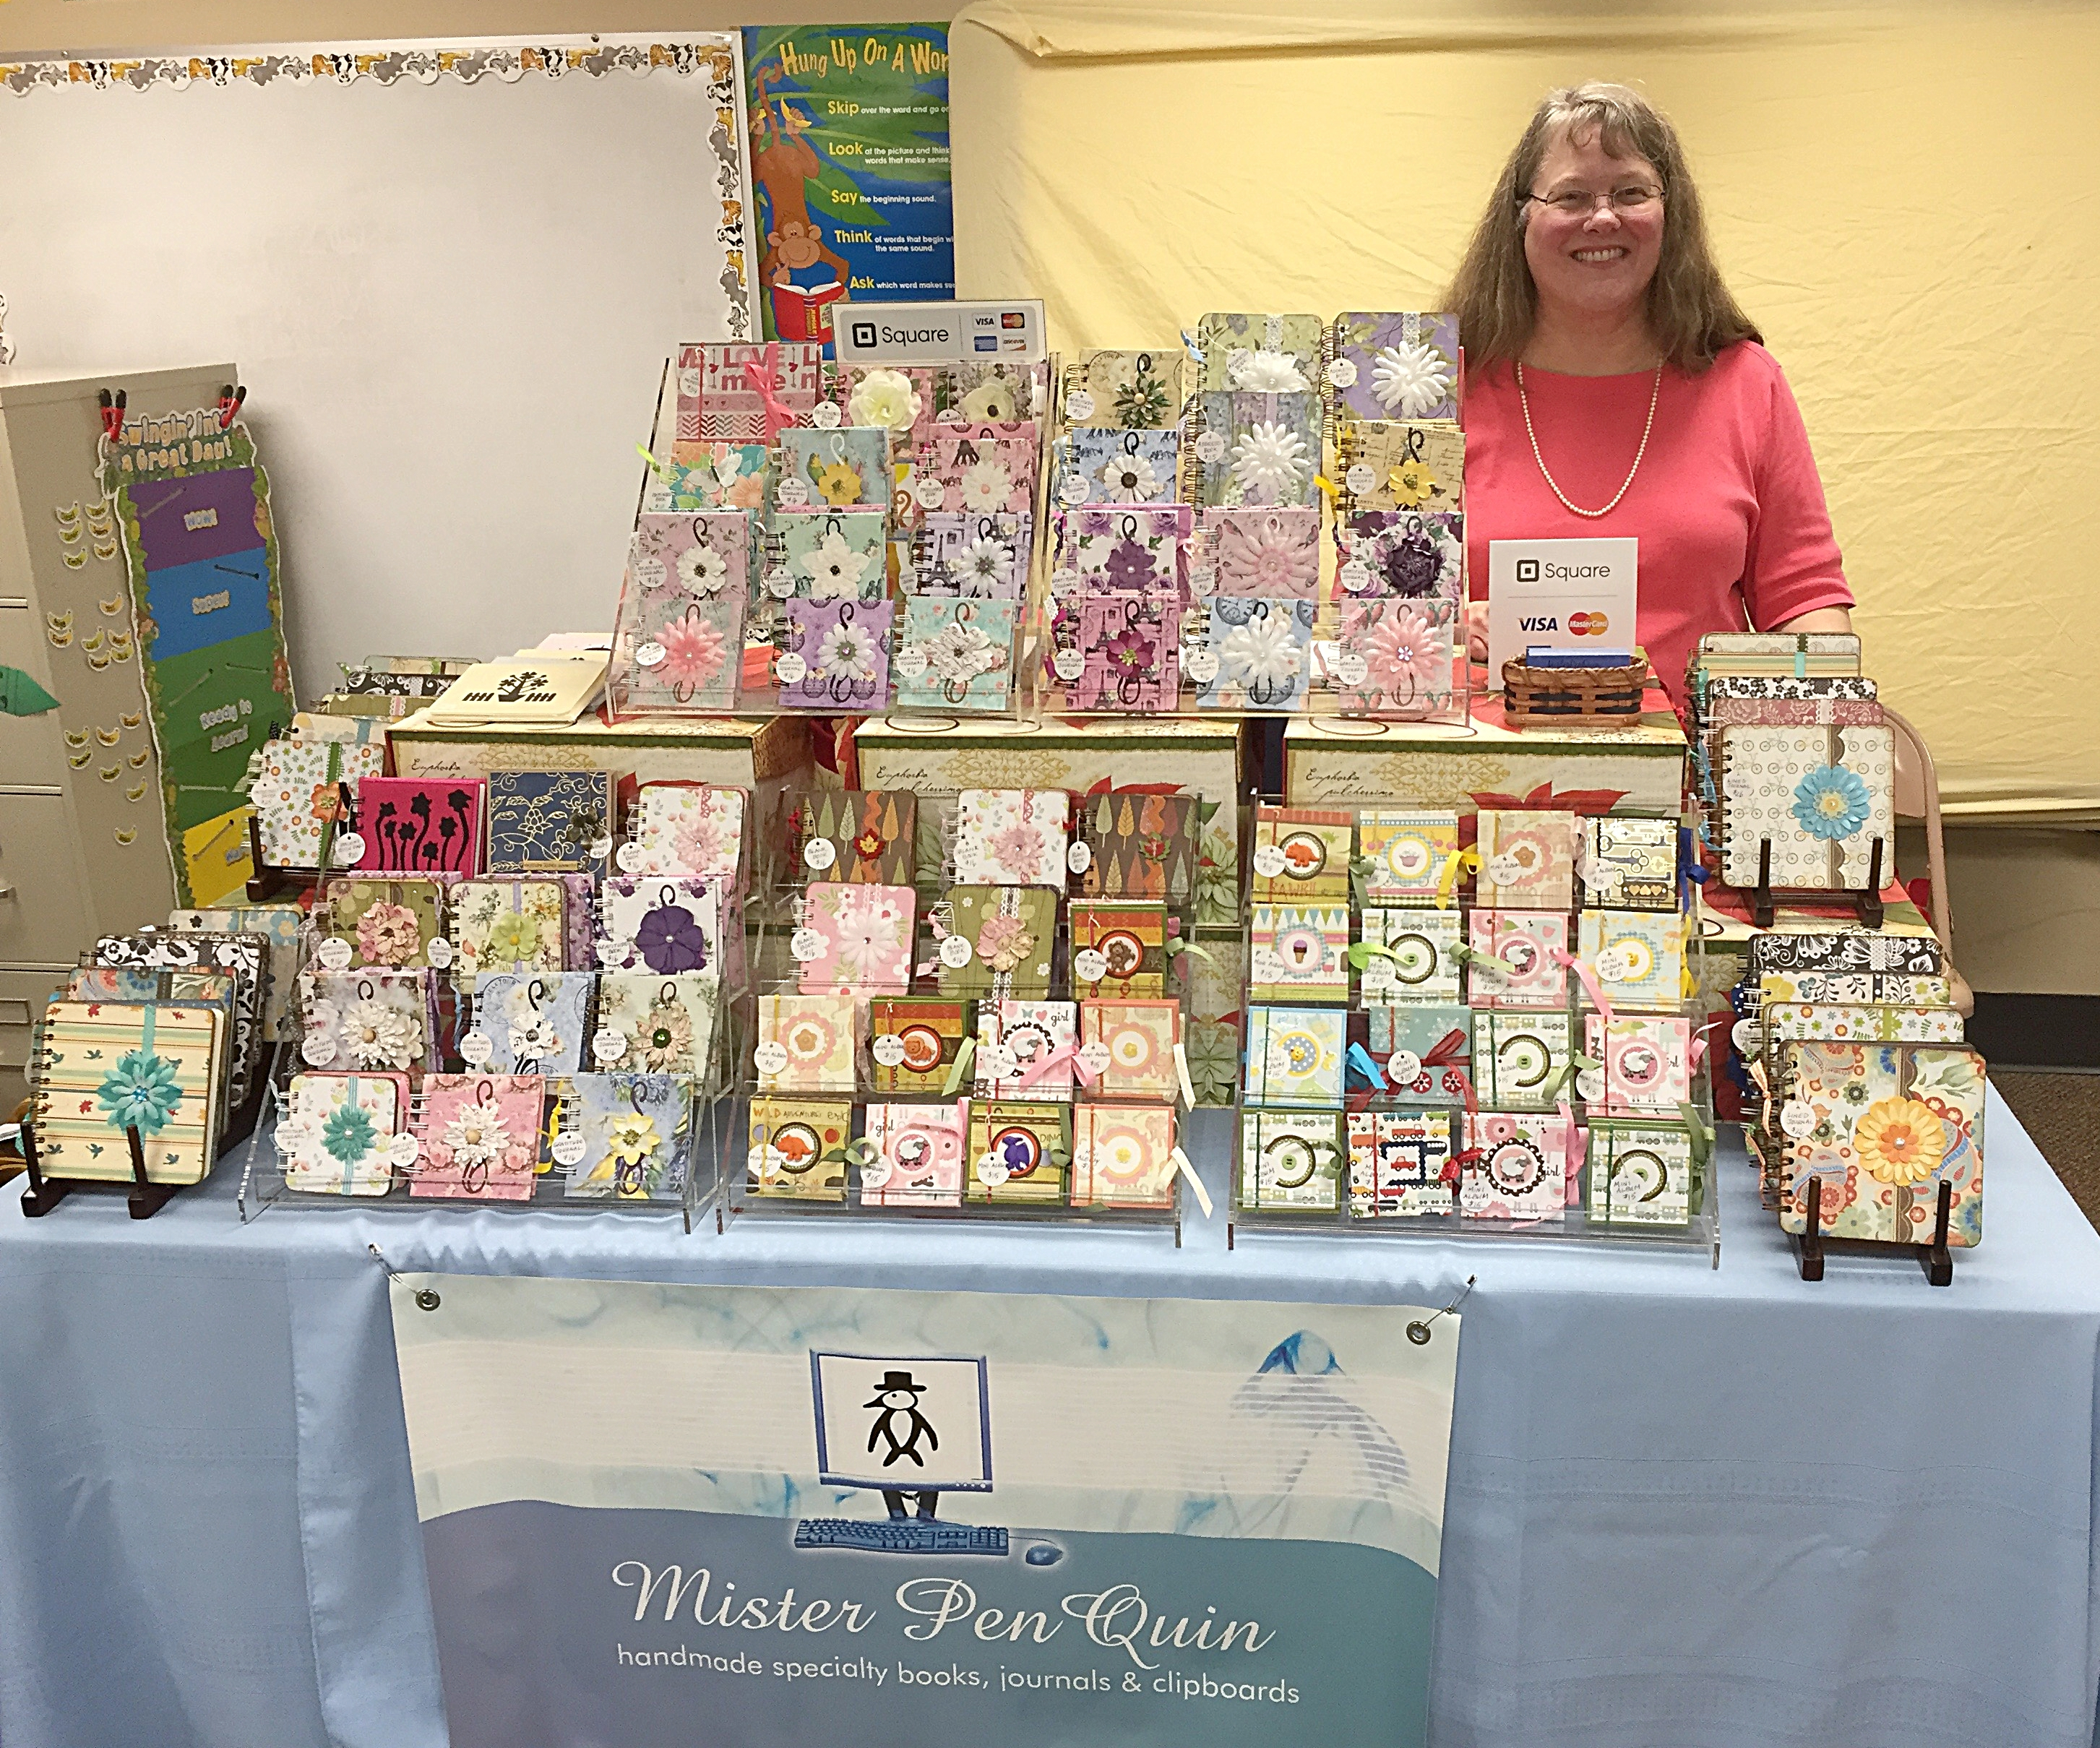 I use a banner from Vista Print that I pin to the table covering for my handmade books.